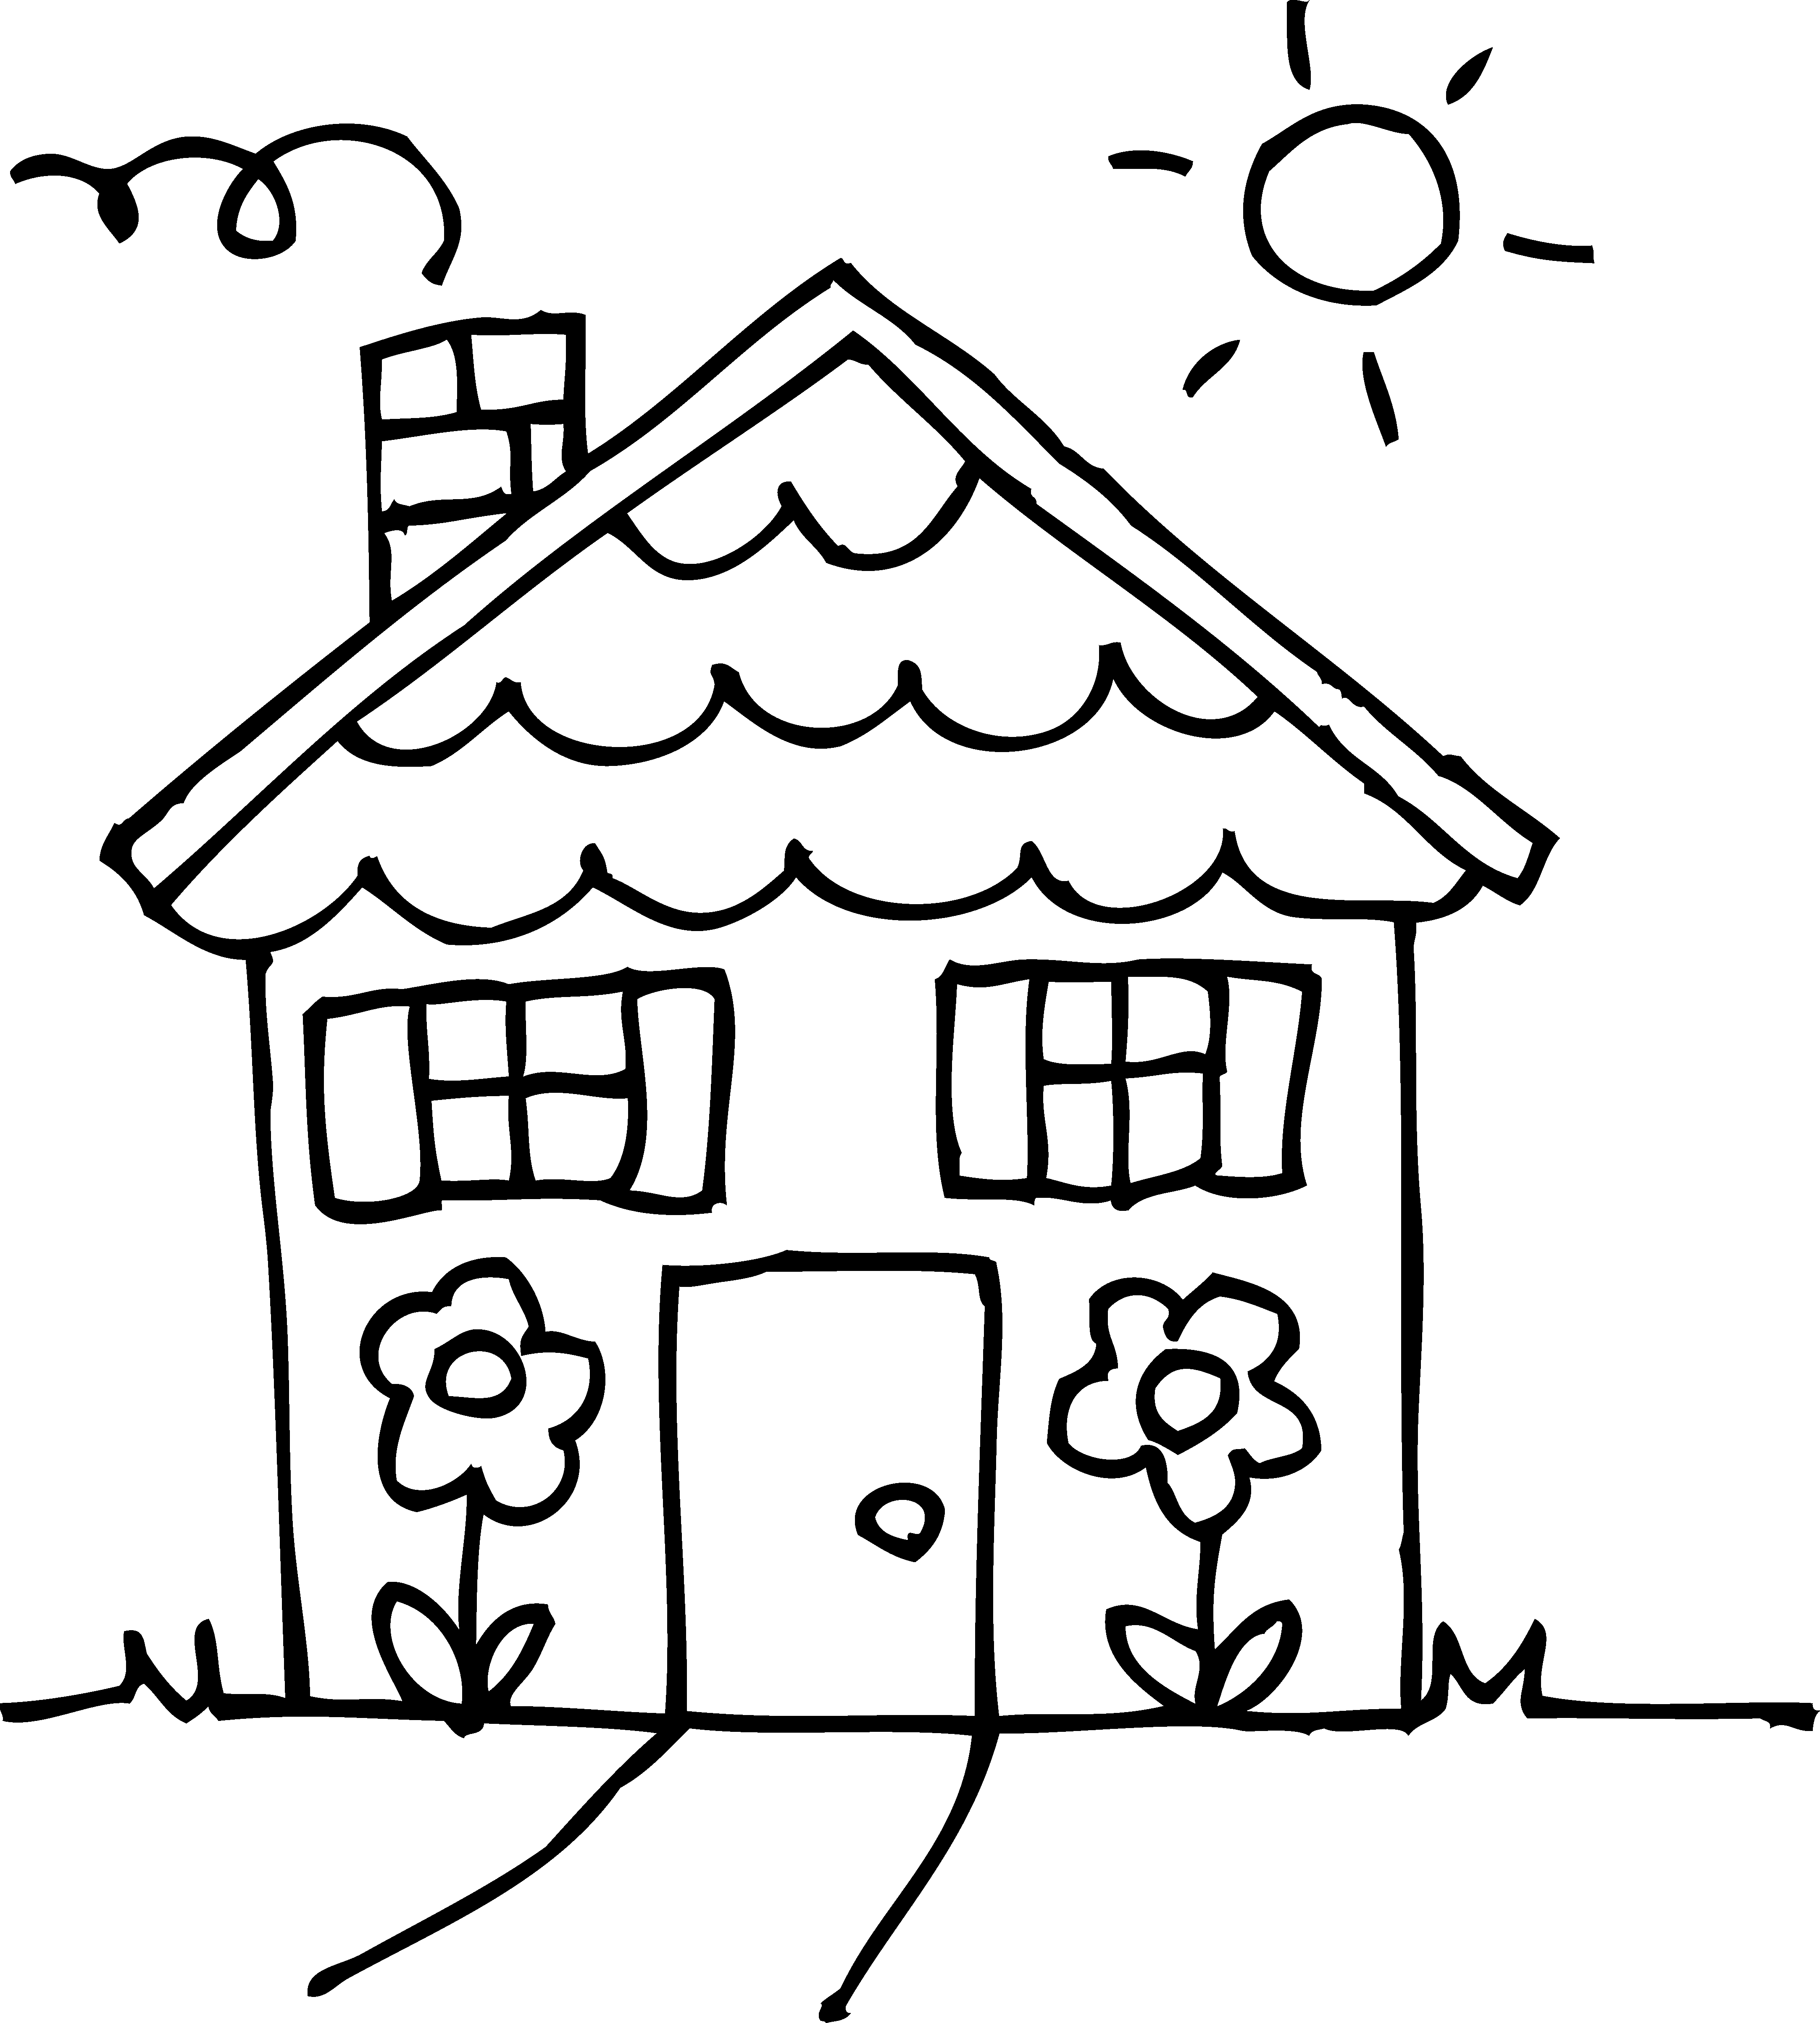 Smoking clipart house outline Inside White Page Coloring House